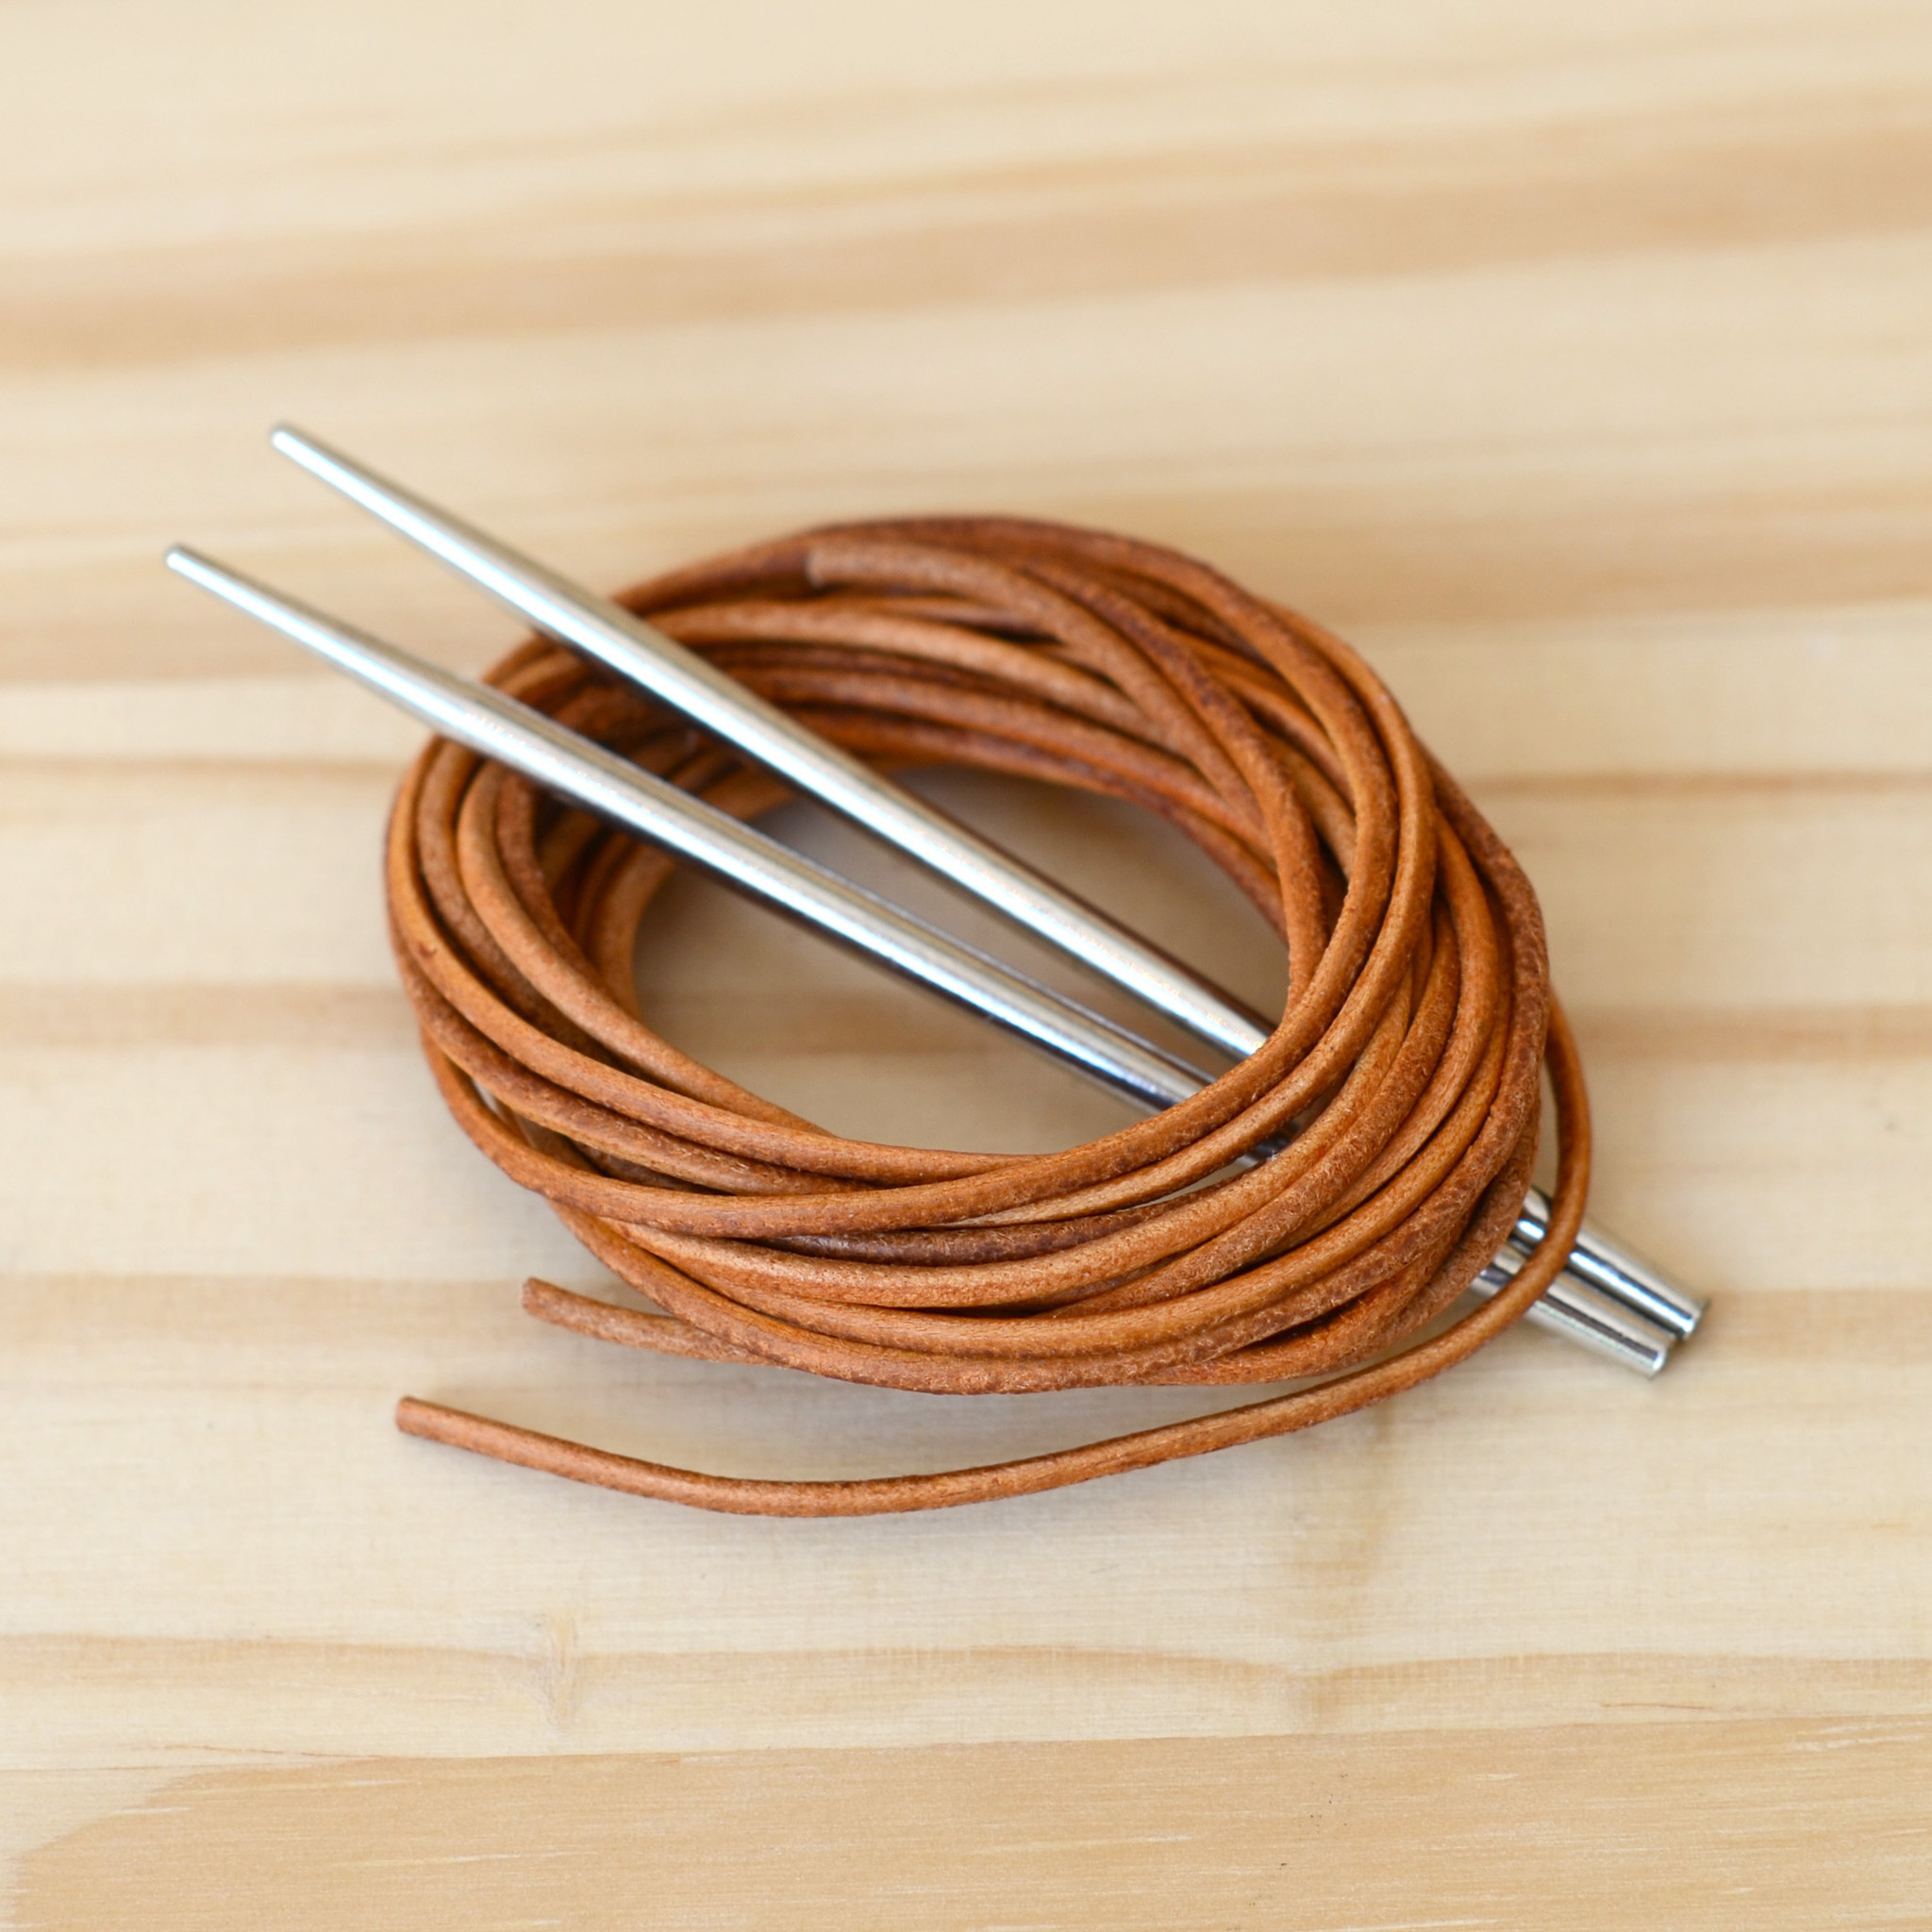 Cocoknits : Leather Cord and Needle Stitch Holder Kit